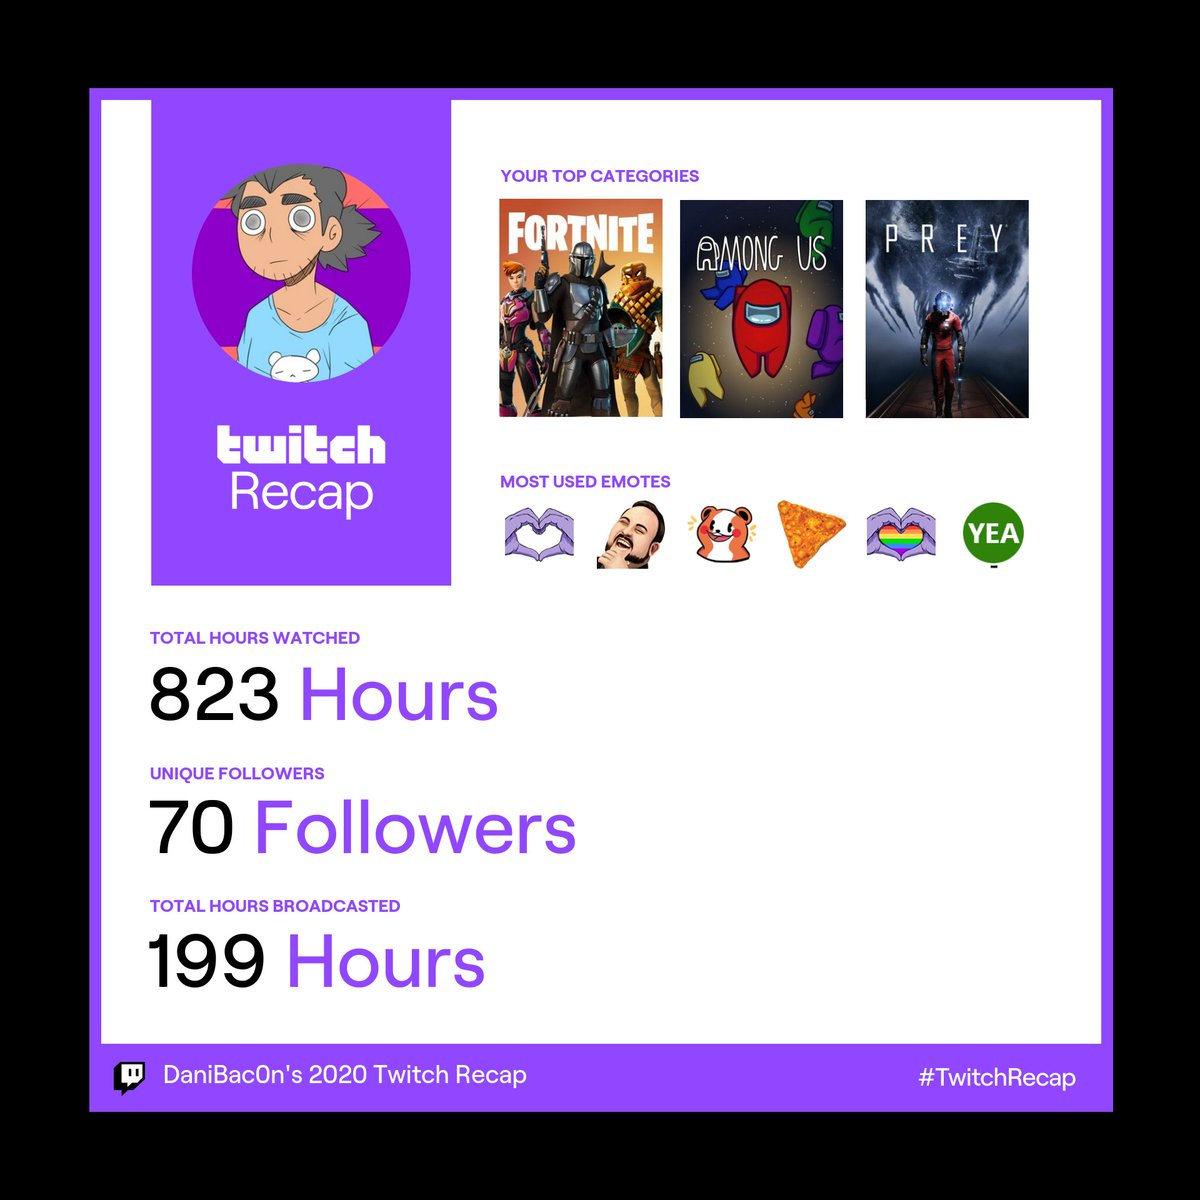 It appears we 'ave become a Fortnite channel me mates, I 'ave failed ye.  (Breaking Character here: Thank you all so much for being part of this endeavor and for supporting me through this adventure of becoming a streamer ^ - ^!!)  #TwitchRecap2020 #twitchrecap